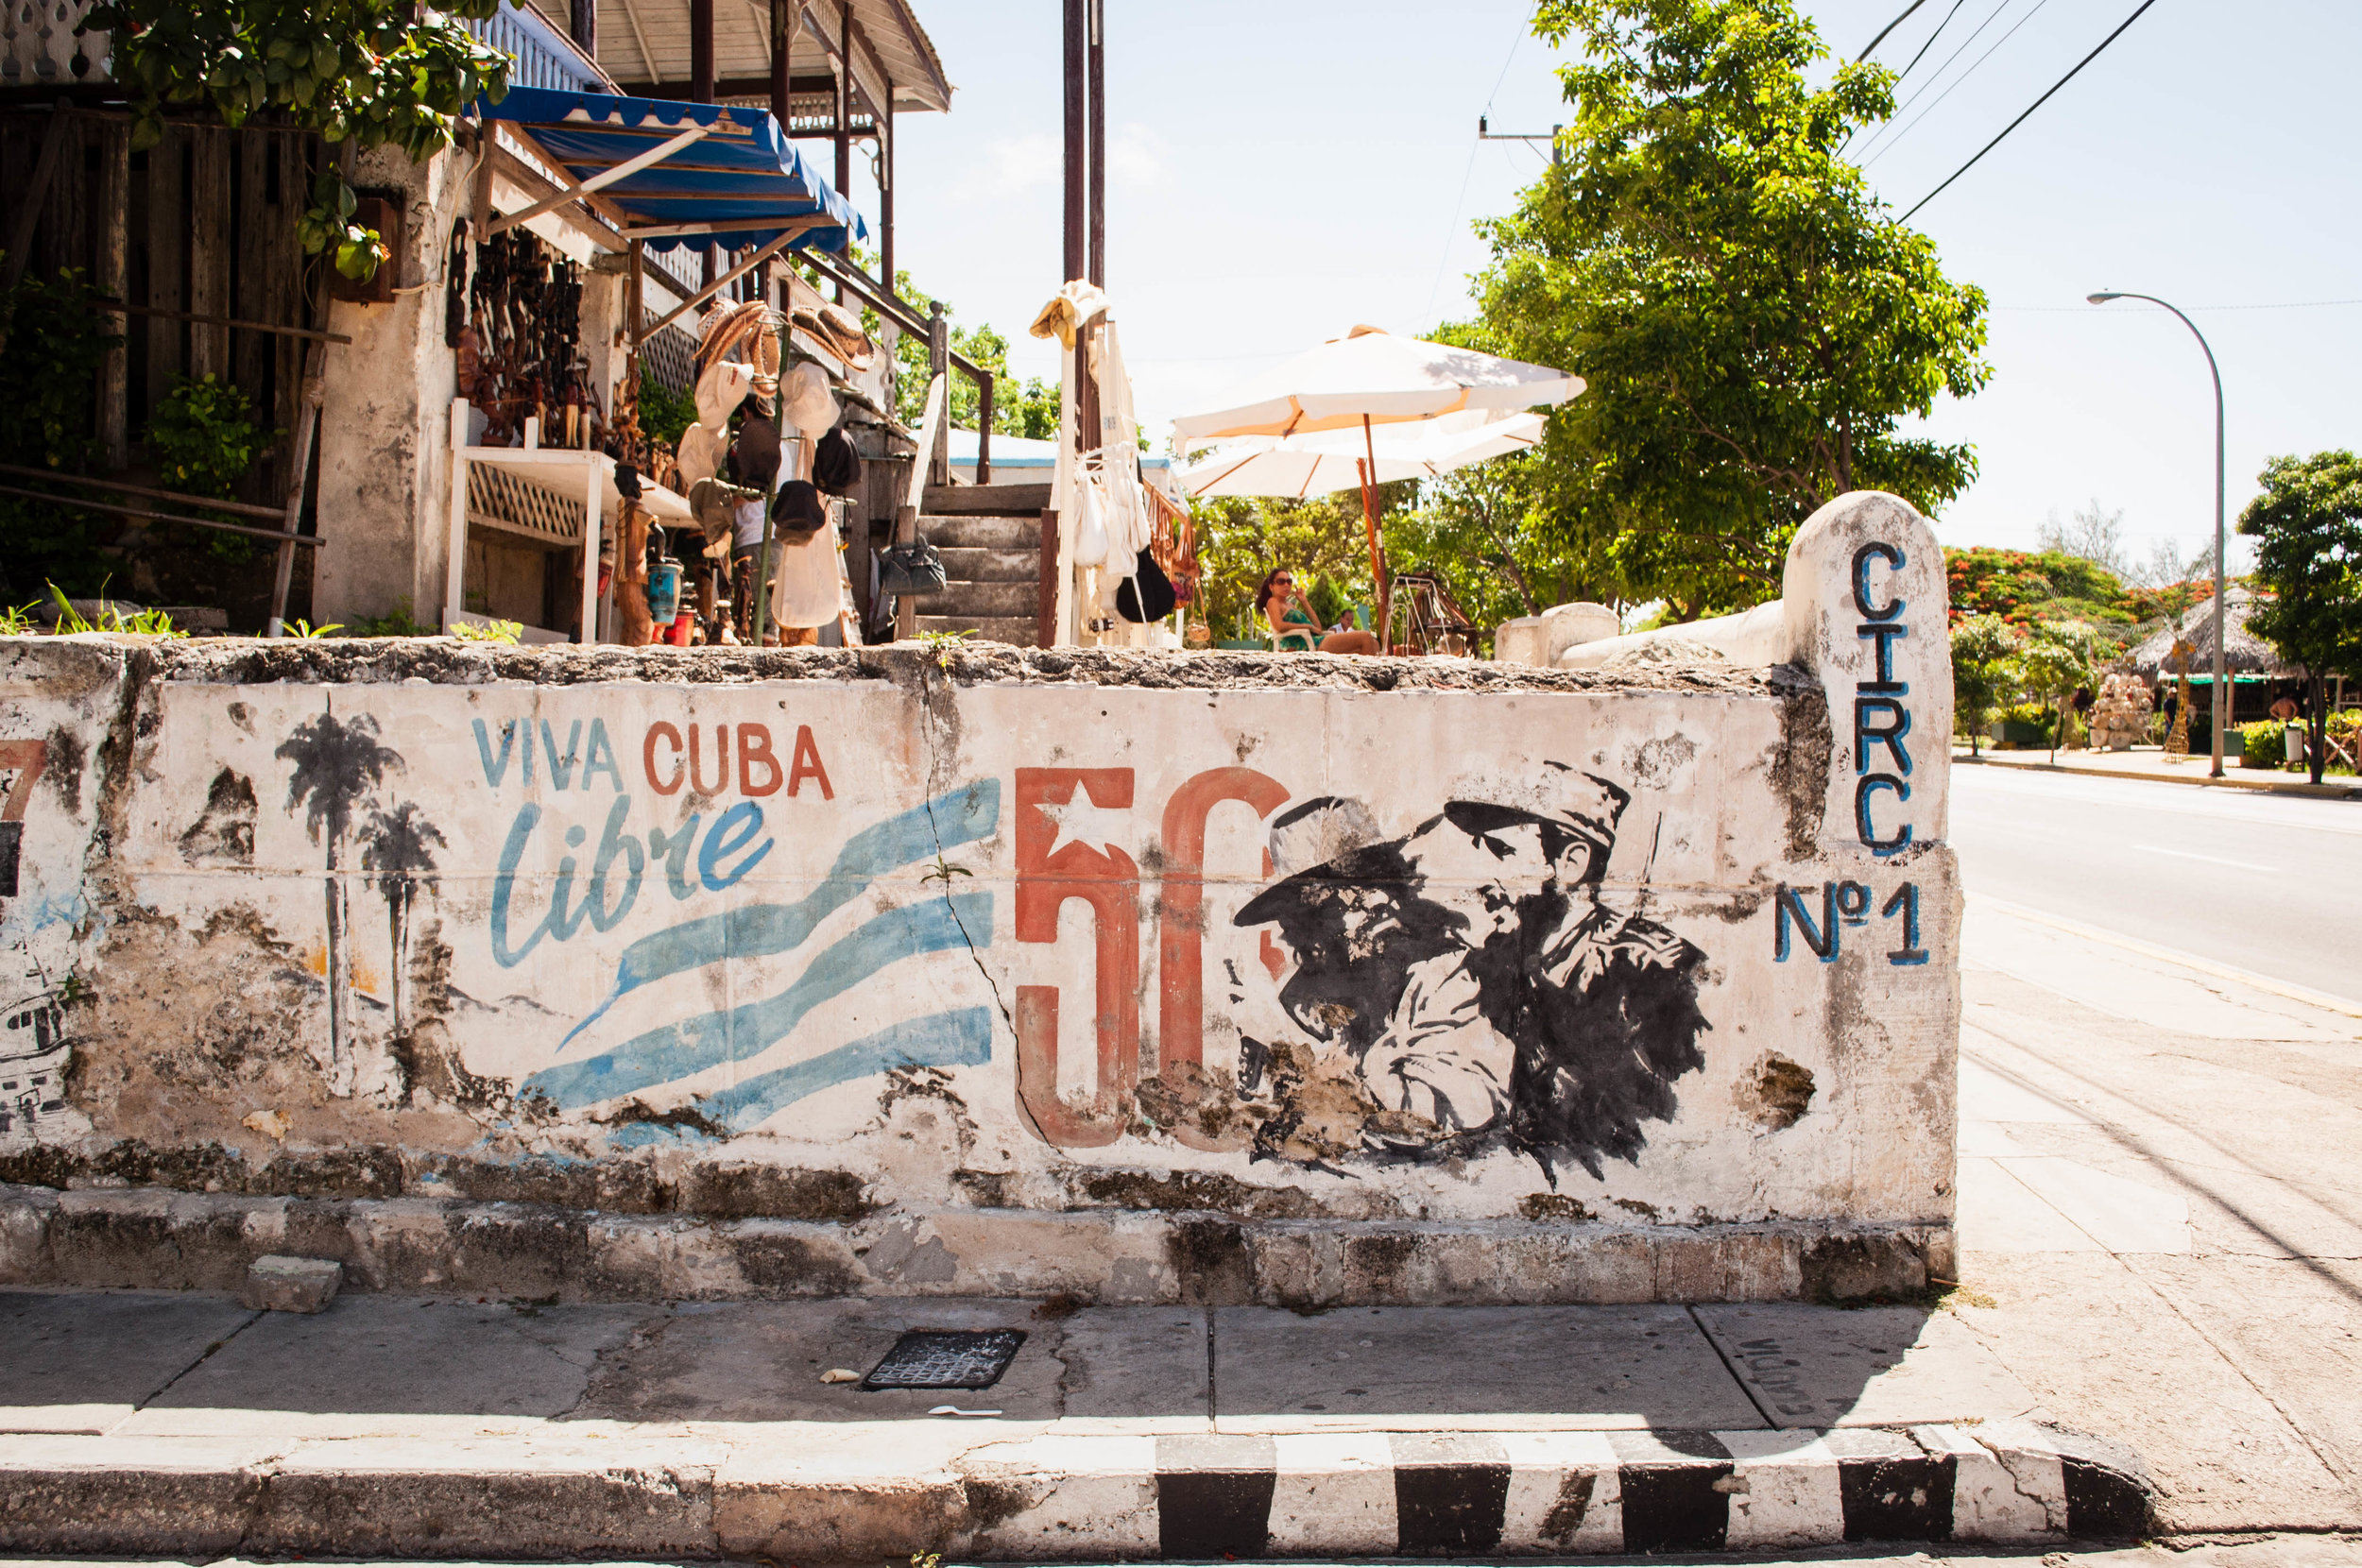 Decaying mural with el Che & Castro on a wall conveying a communist, revolution message on a house mural. Scene seeing during our day trip to La Havana